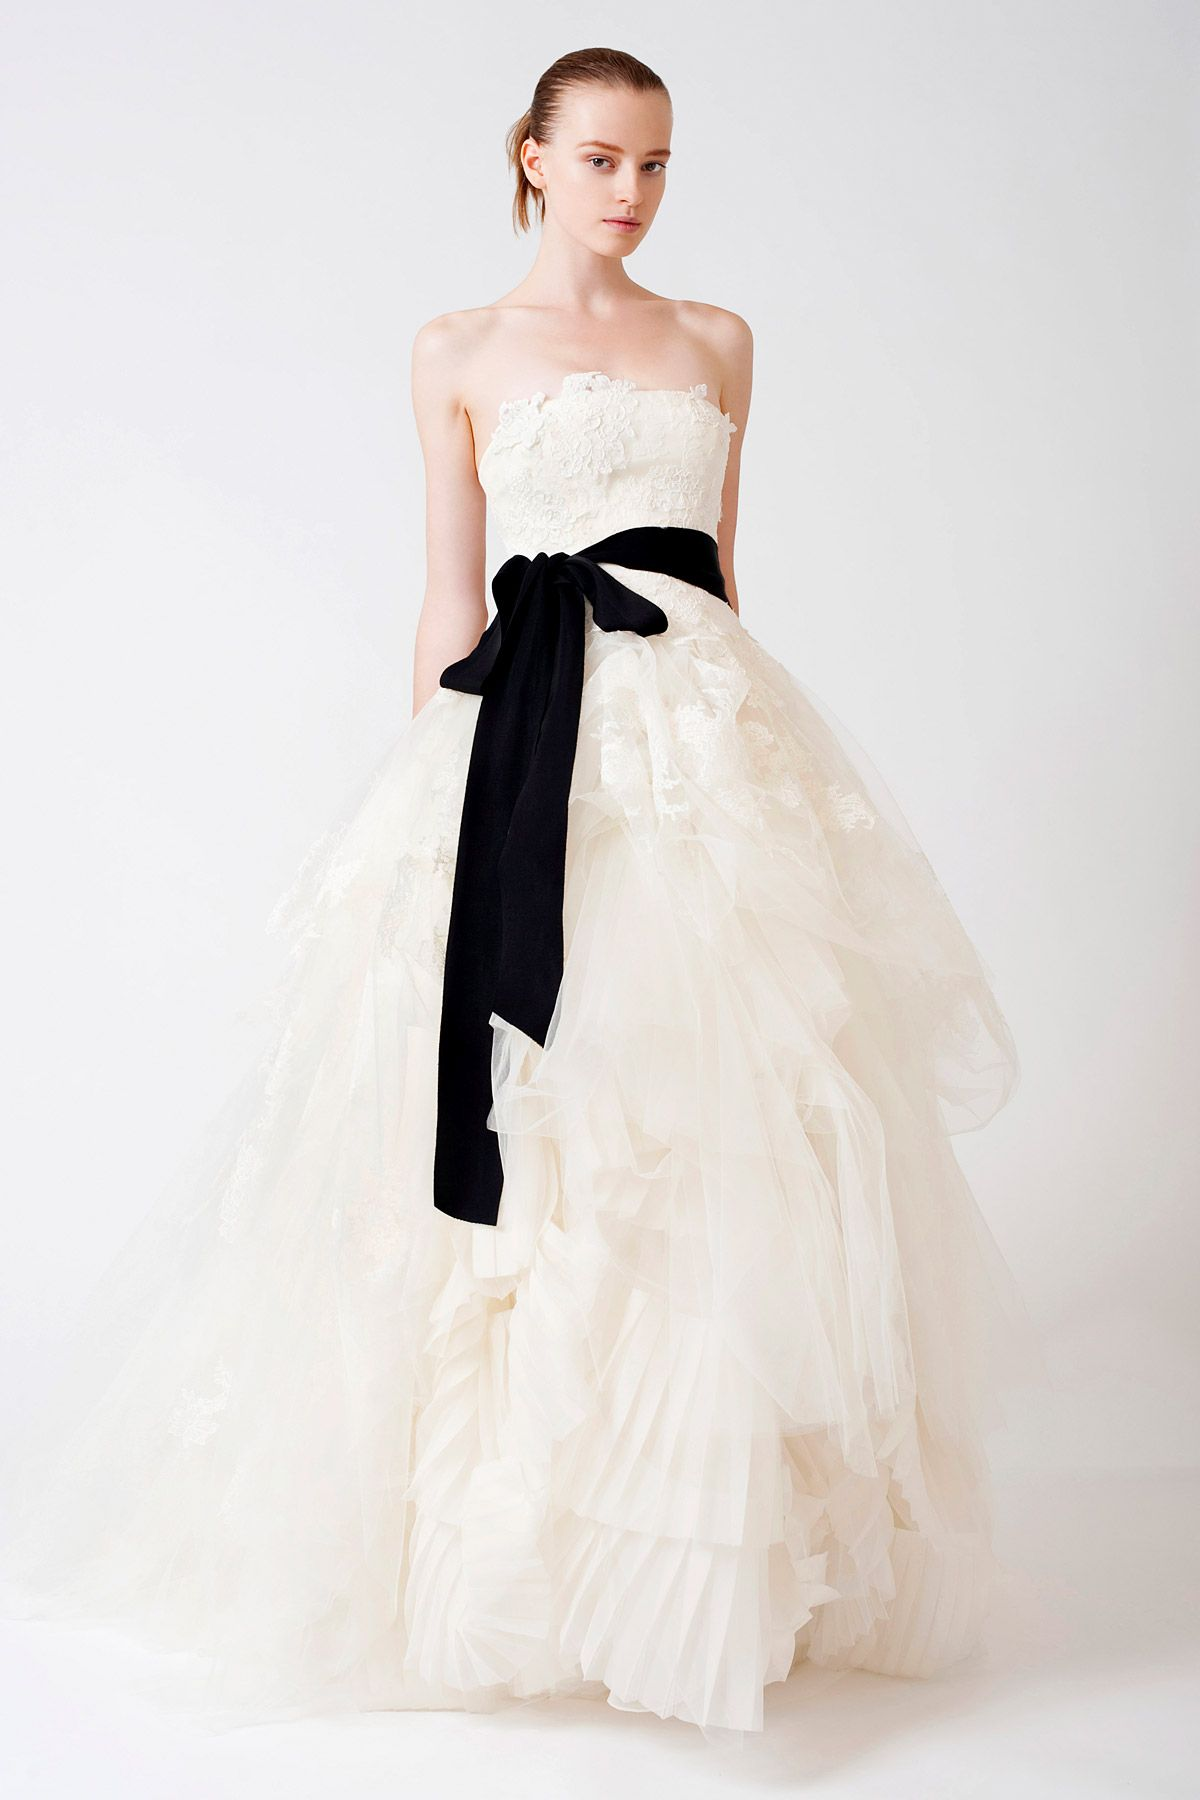 Winter wedding inspiration wedding dressses marriage and haute